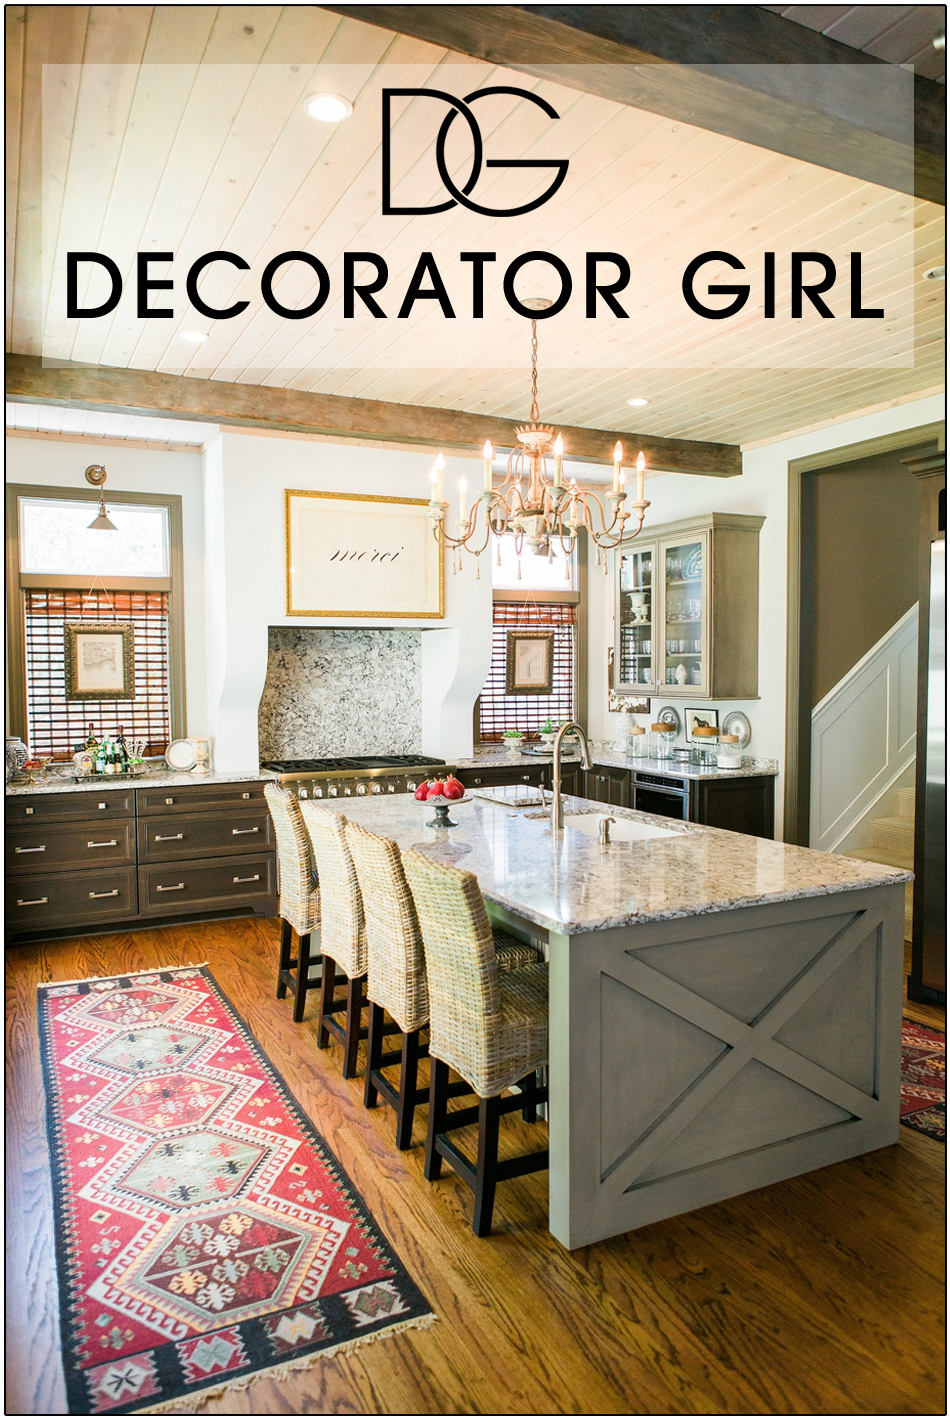 Decorator Girl Is An Interior Decorator Located In The Northern Florida Area Near Jacksonville And Fleming Island Design Desig Kitchen Remodel Decor Interior